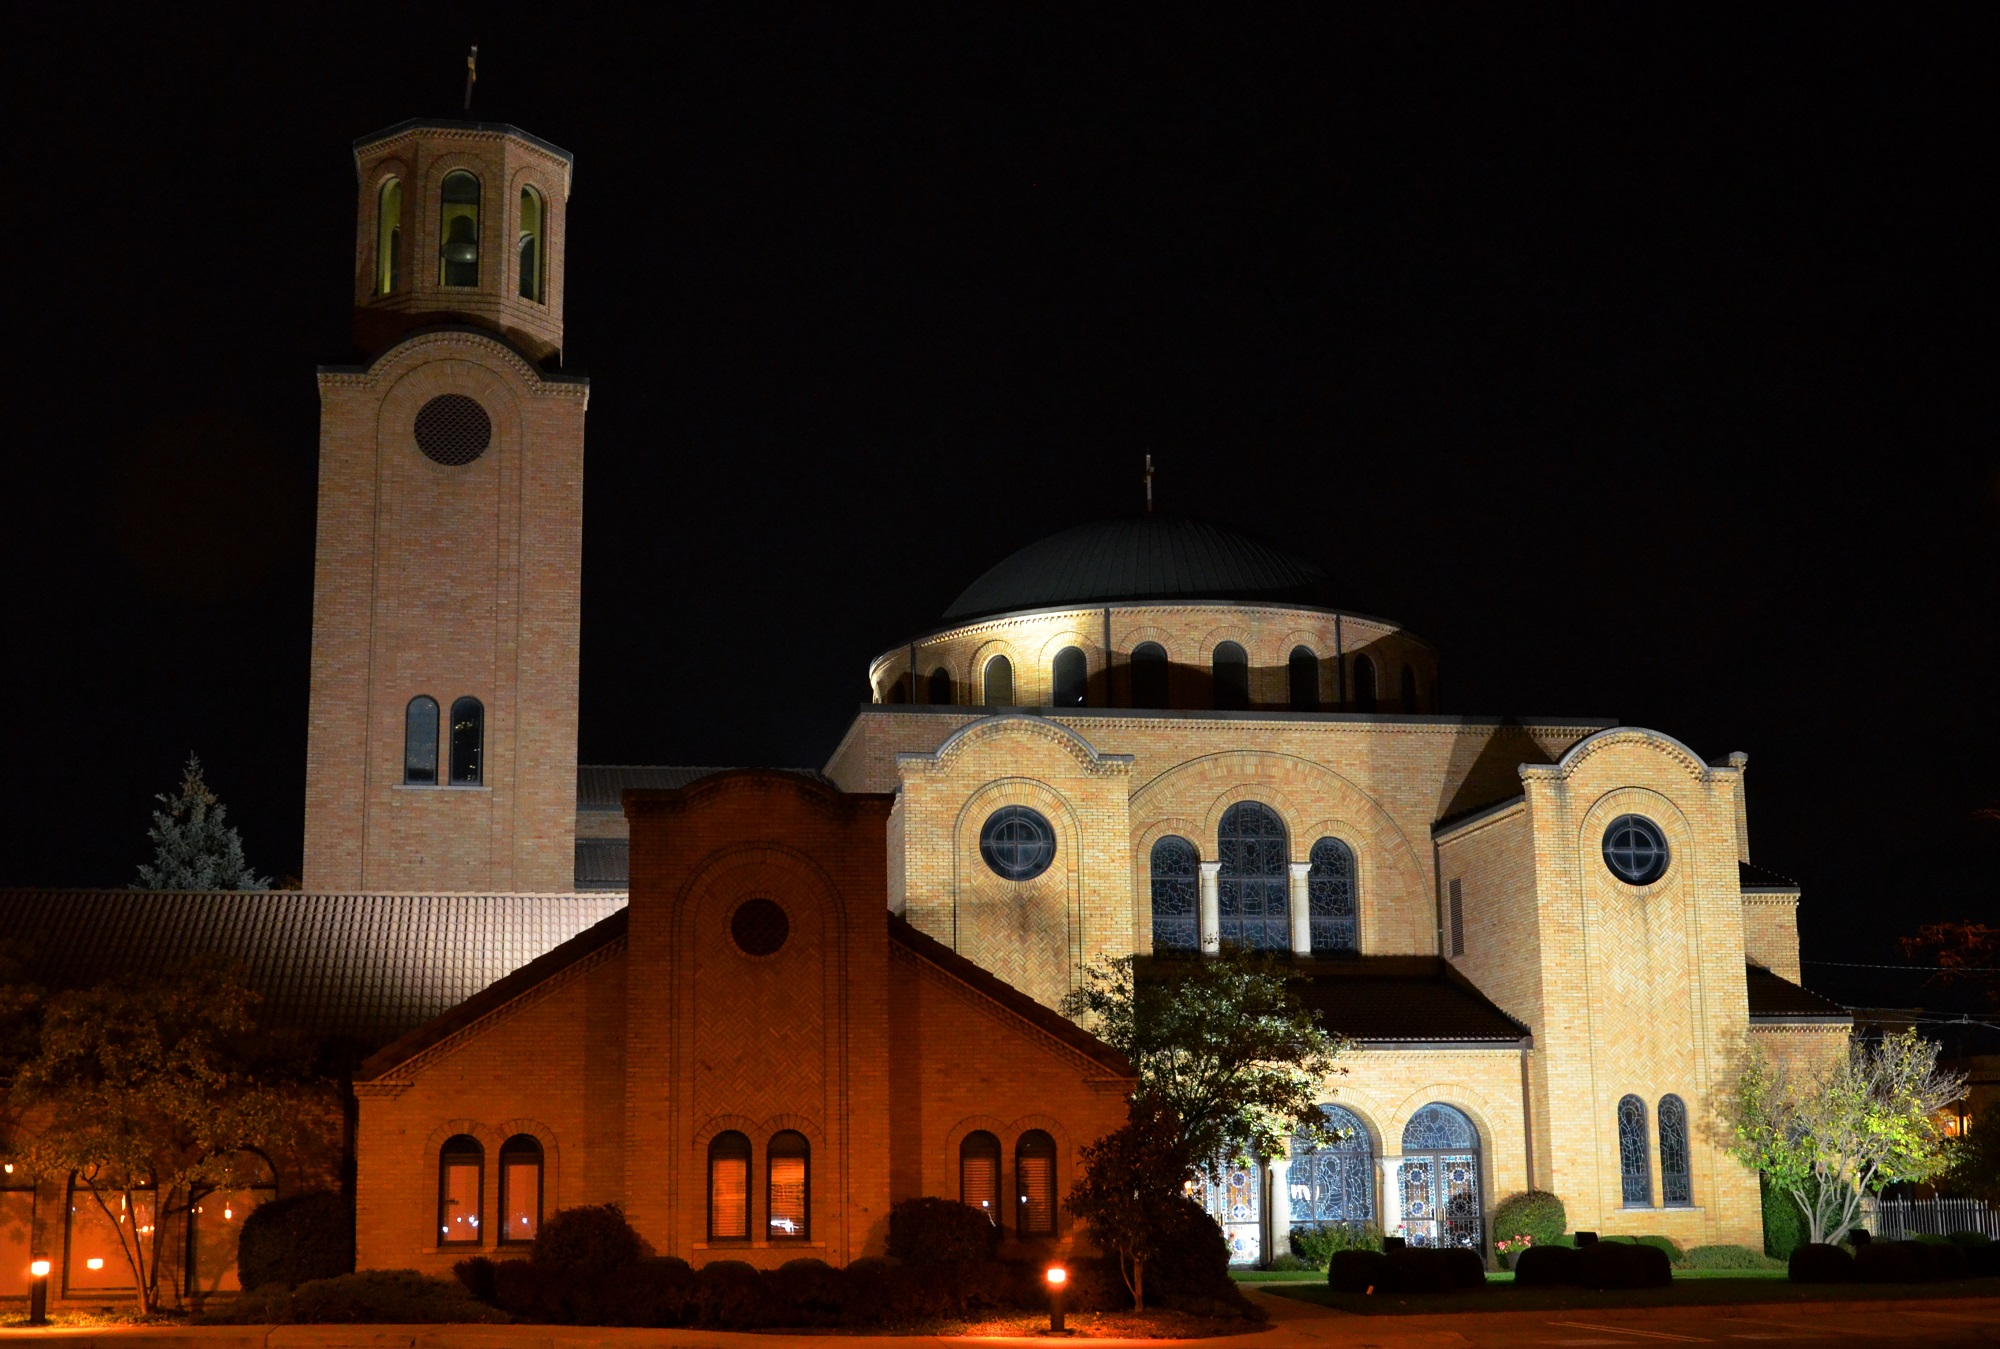 The Annunciation Greek Orthodox Cathedral in Columbus, Ohio, USA